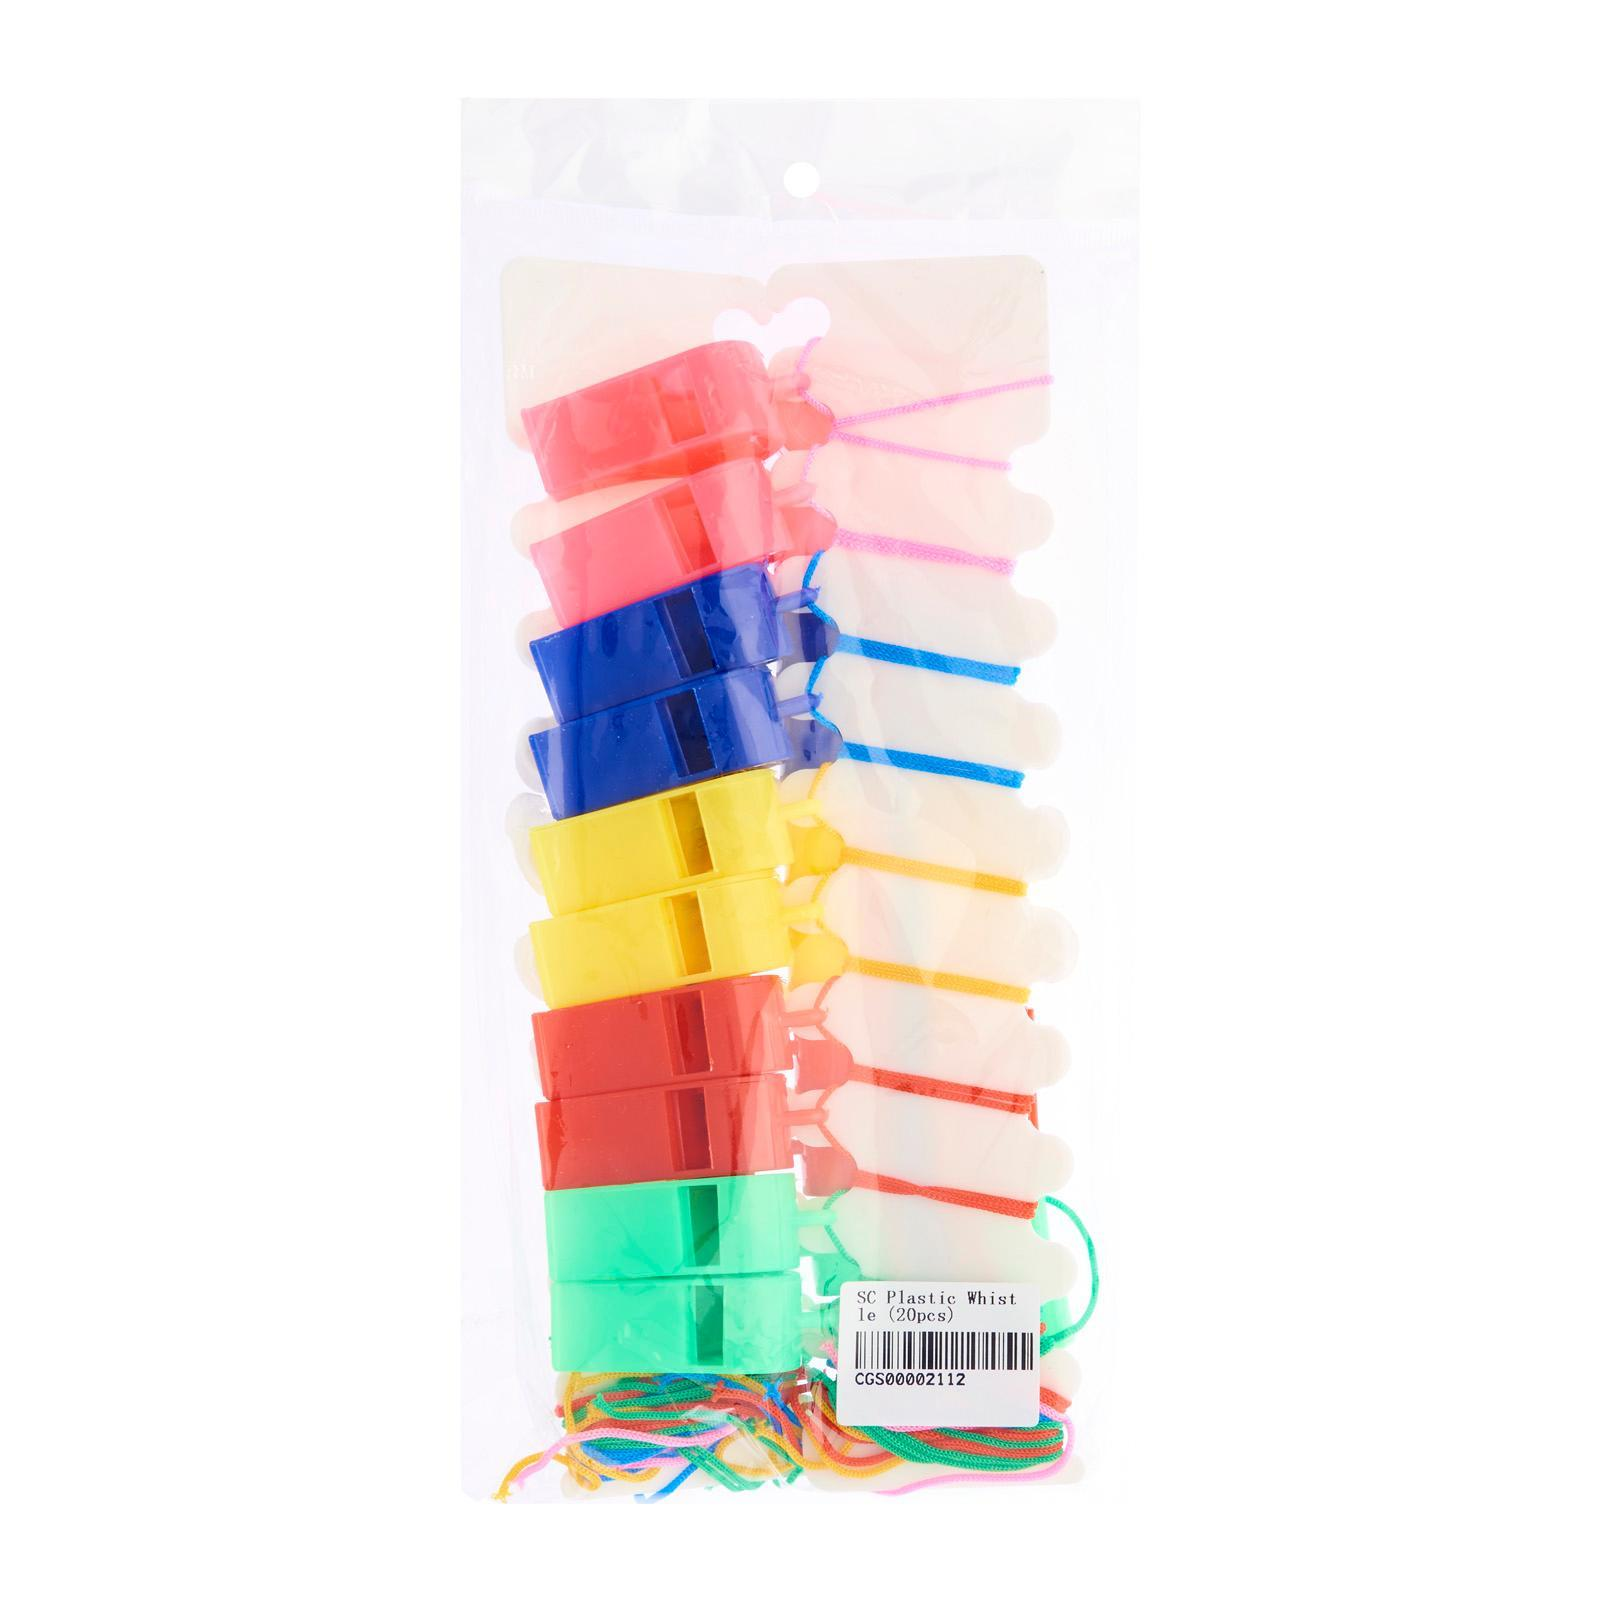 CGS Solid Color Plastic Whistle (Assorted) (20Pcs) - Party Favor